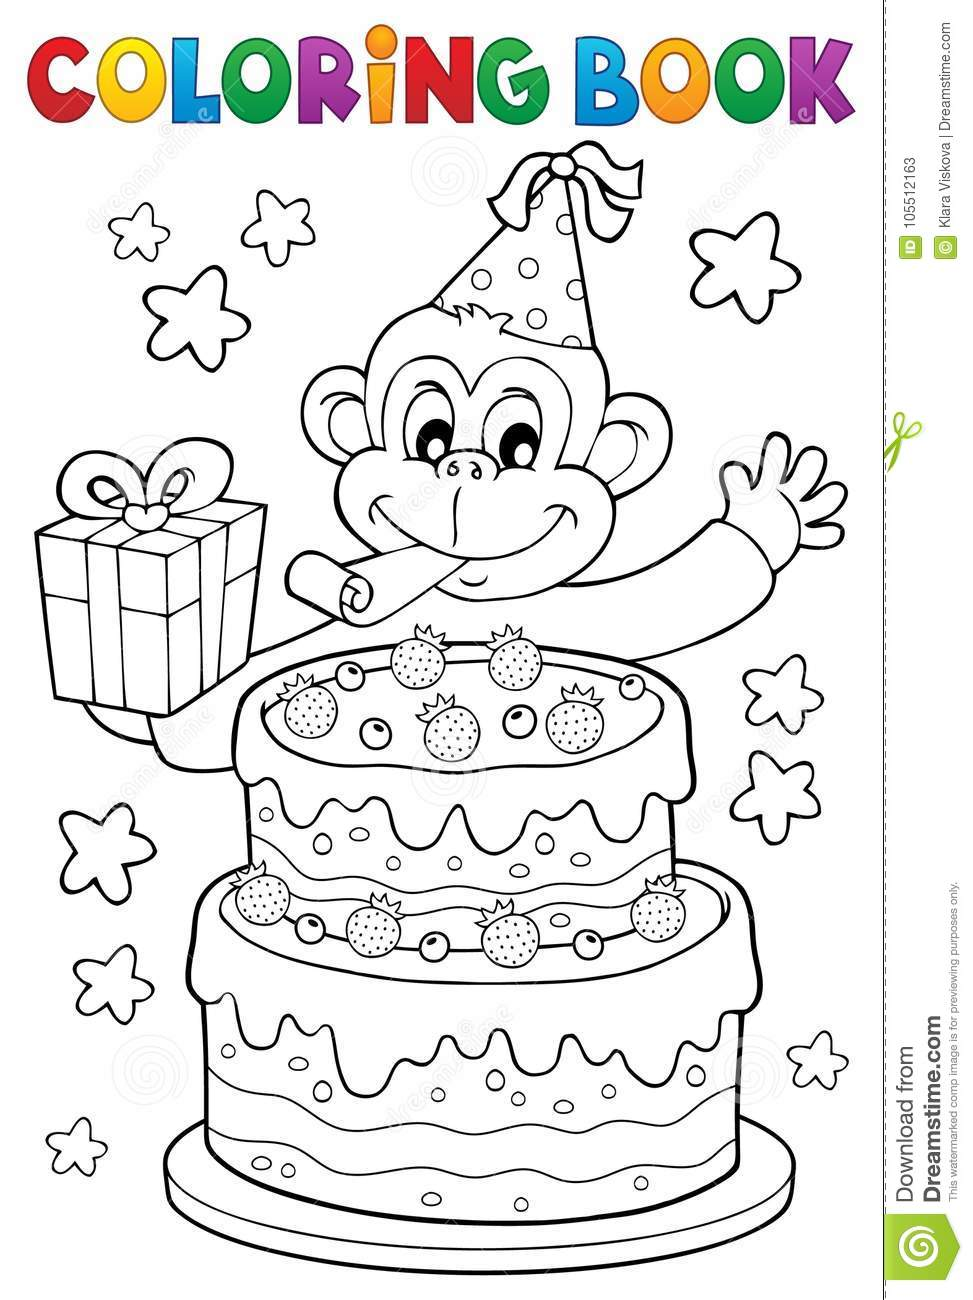 Coloring Book Cake And Party Monkey Stock Vector - Illustration of ...